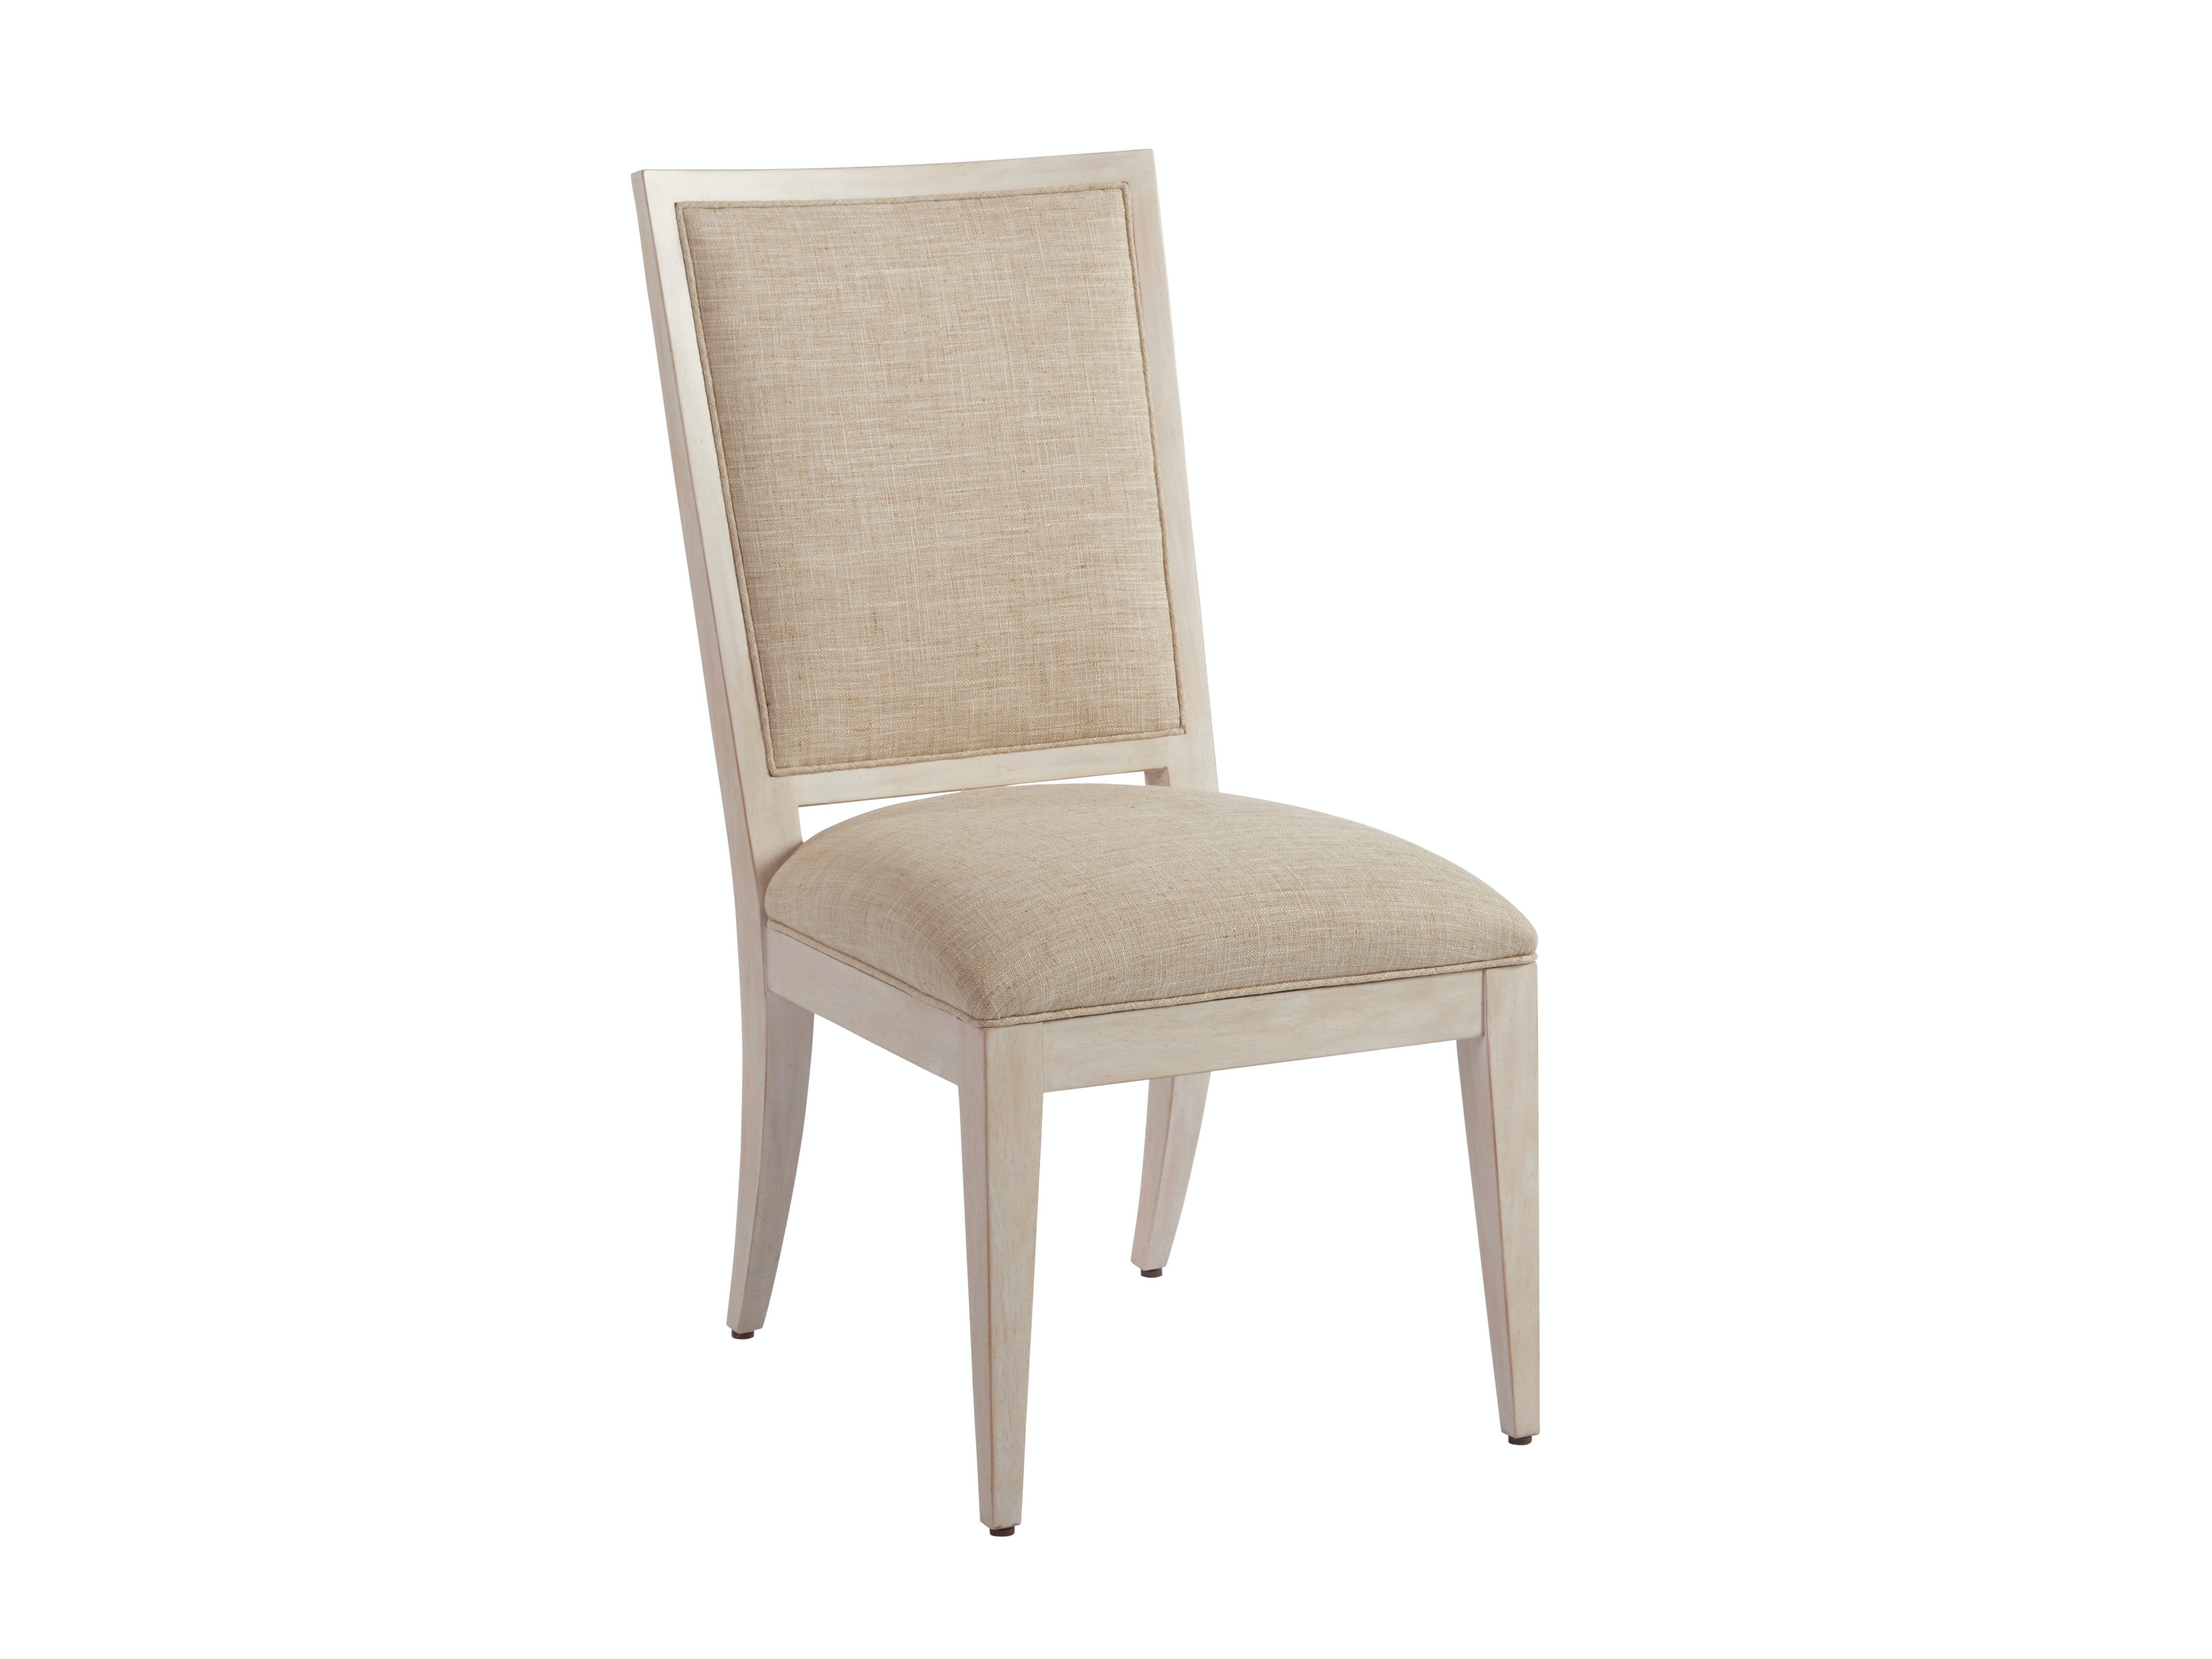 921 880 01. Eastbluff Side Chair